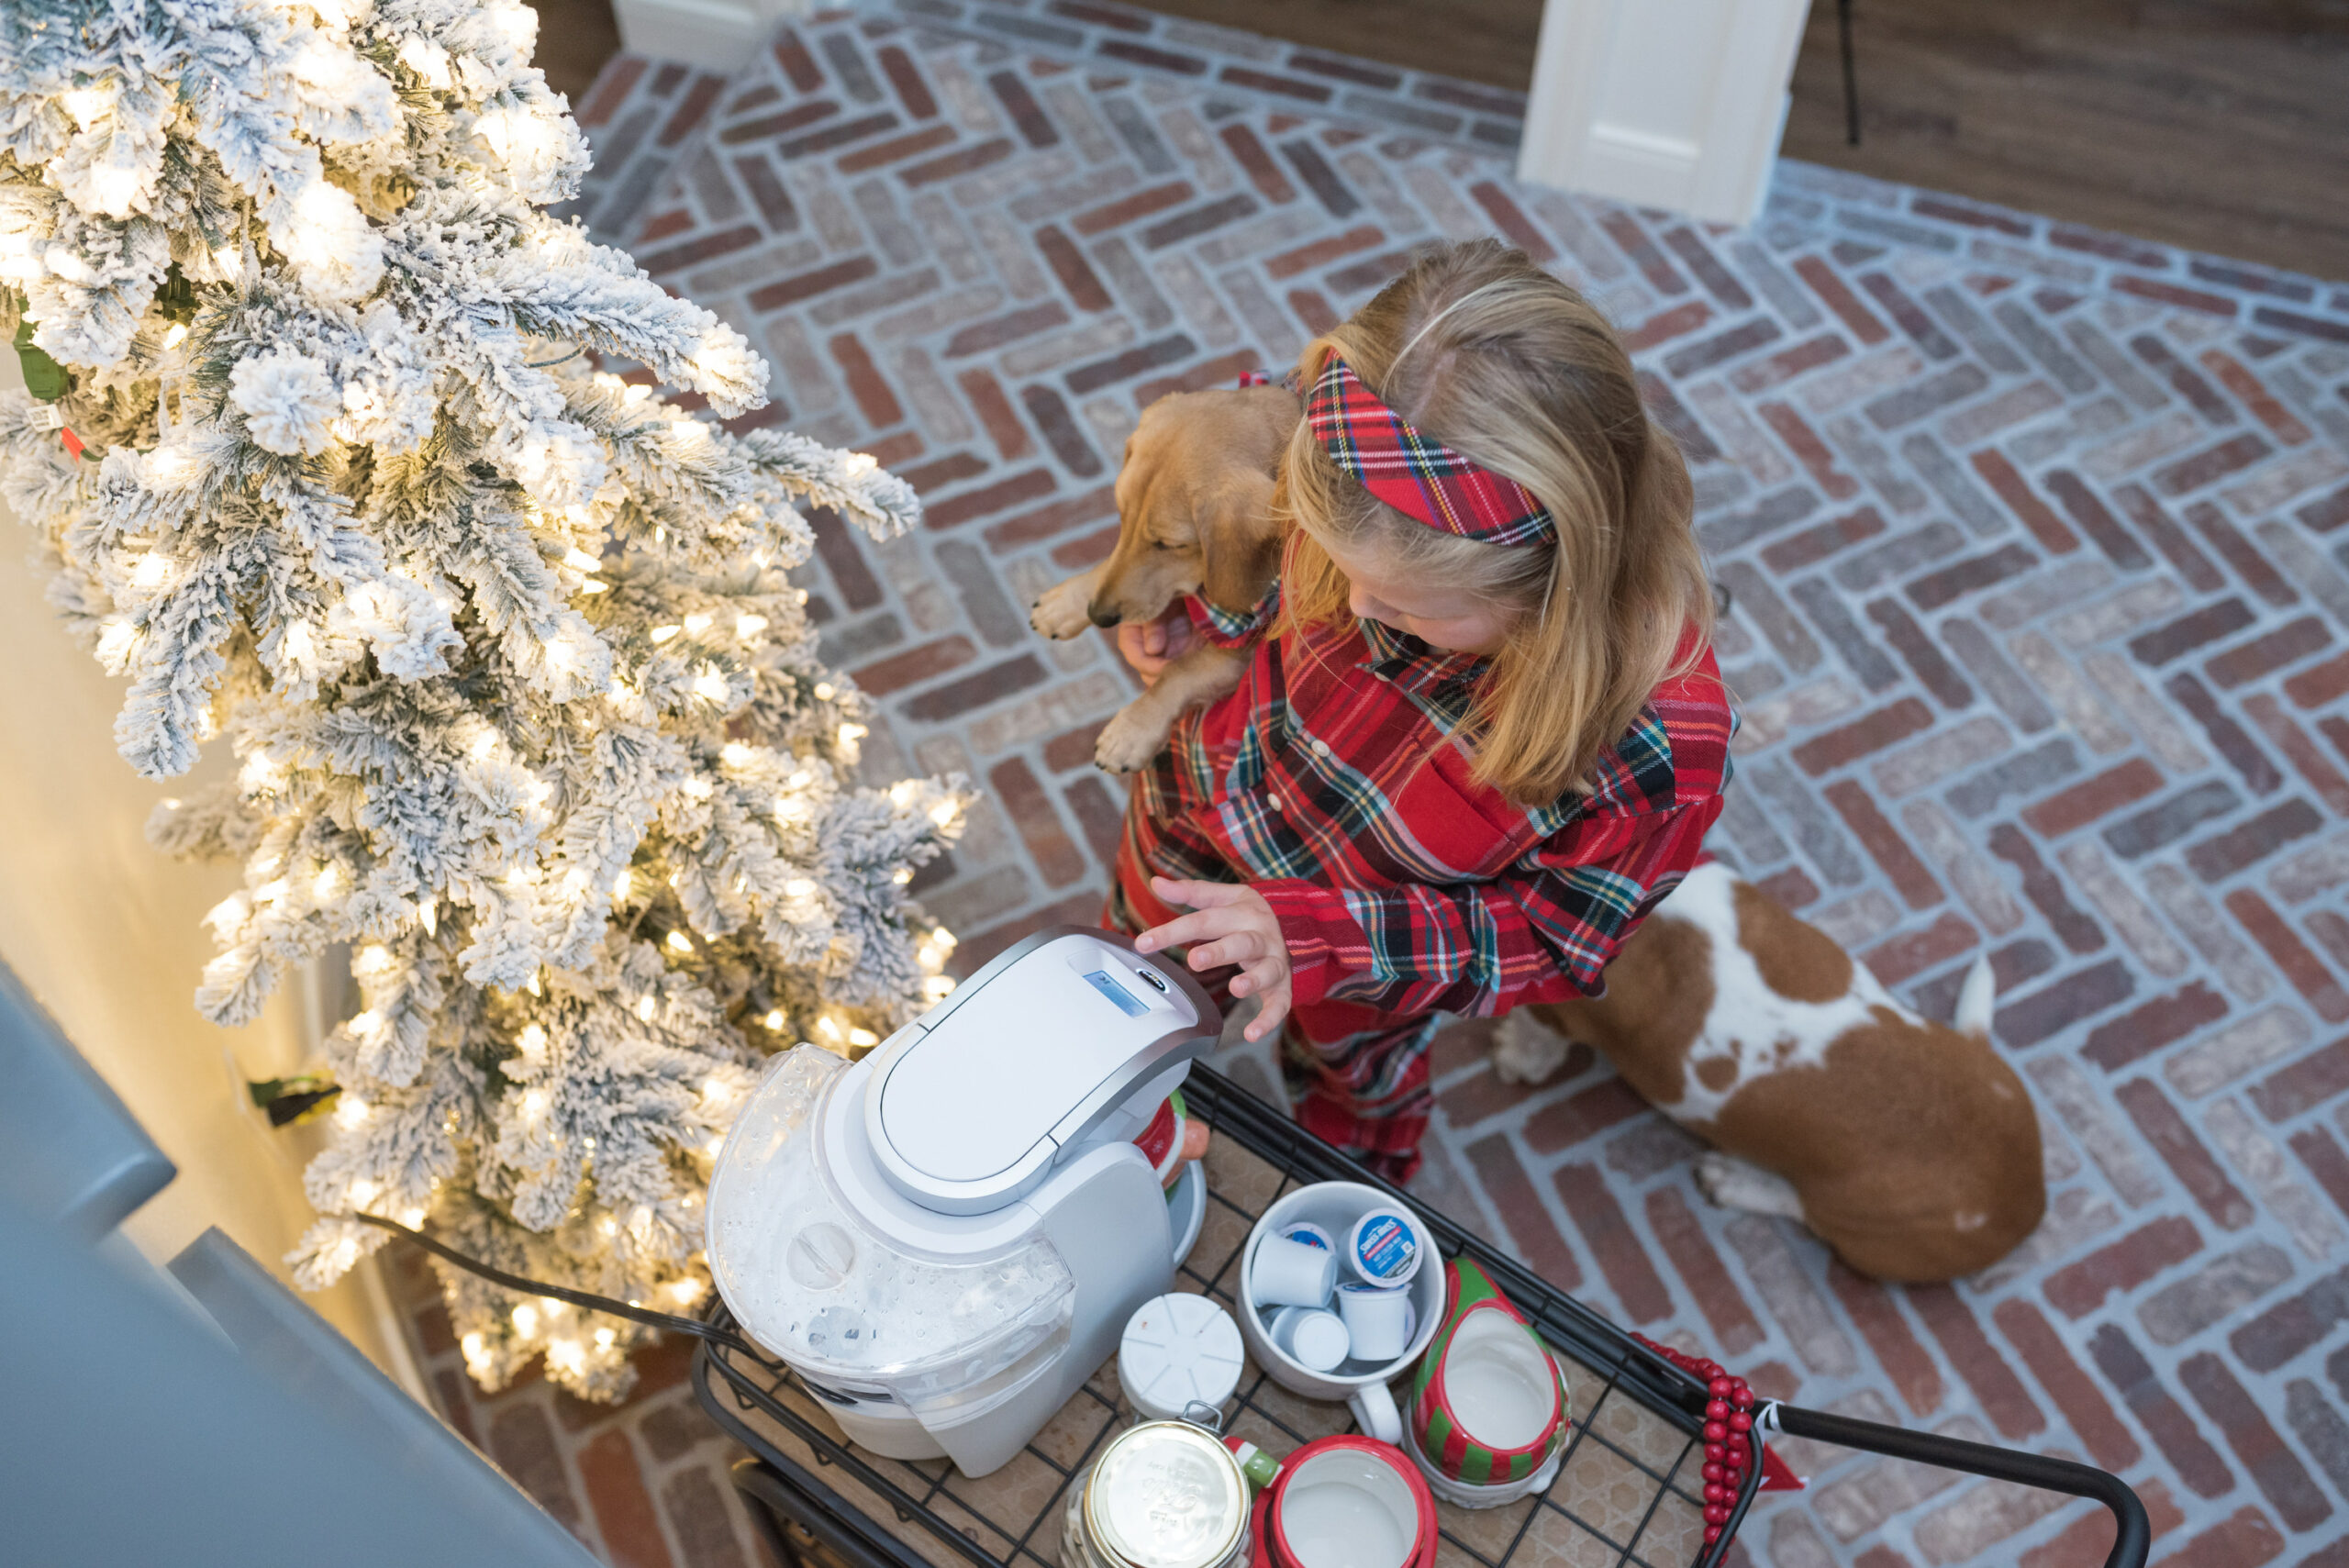 Hot Cocoa Bar by popular Houston lifestyle blog, Fancy Ashley: image of a little girl wearing plaid pajamas and holding her dog while standing next to a black metal bar cart containing a Keurig, Christmas mugs, Christmas garland, mini marshmallows, and coco pods.